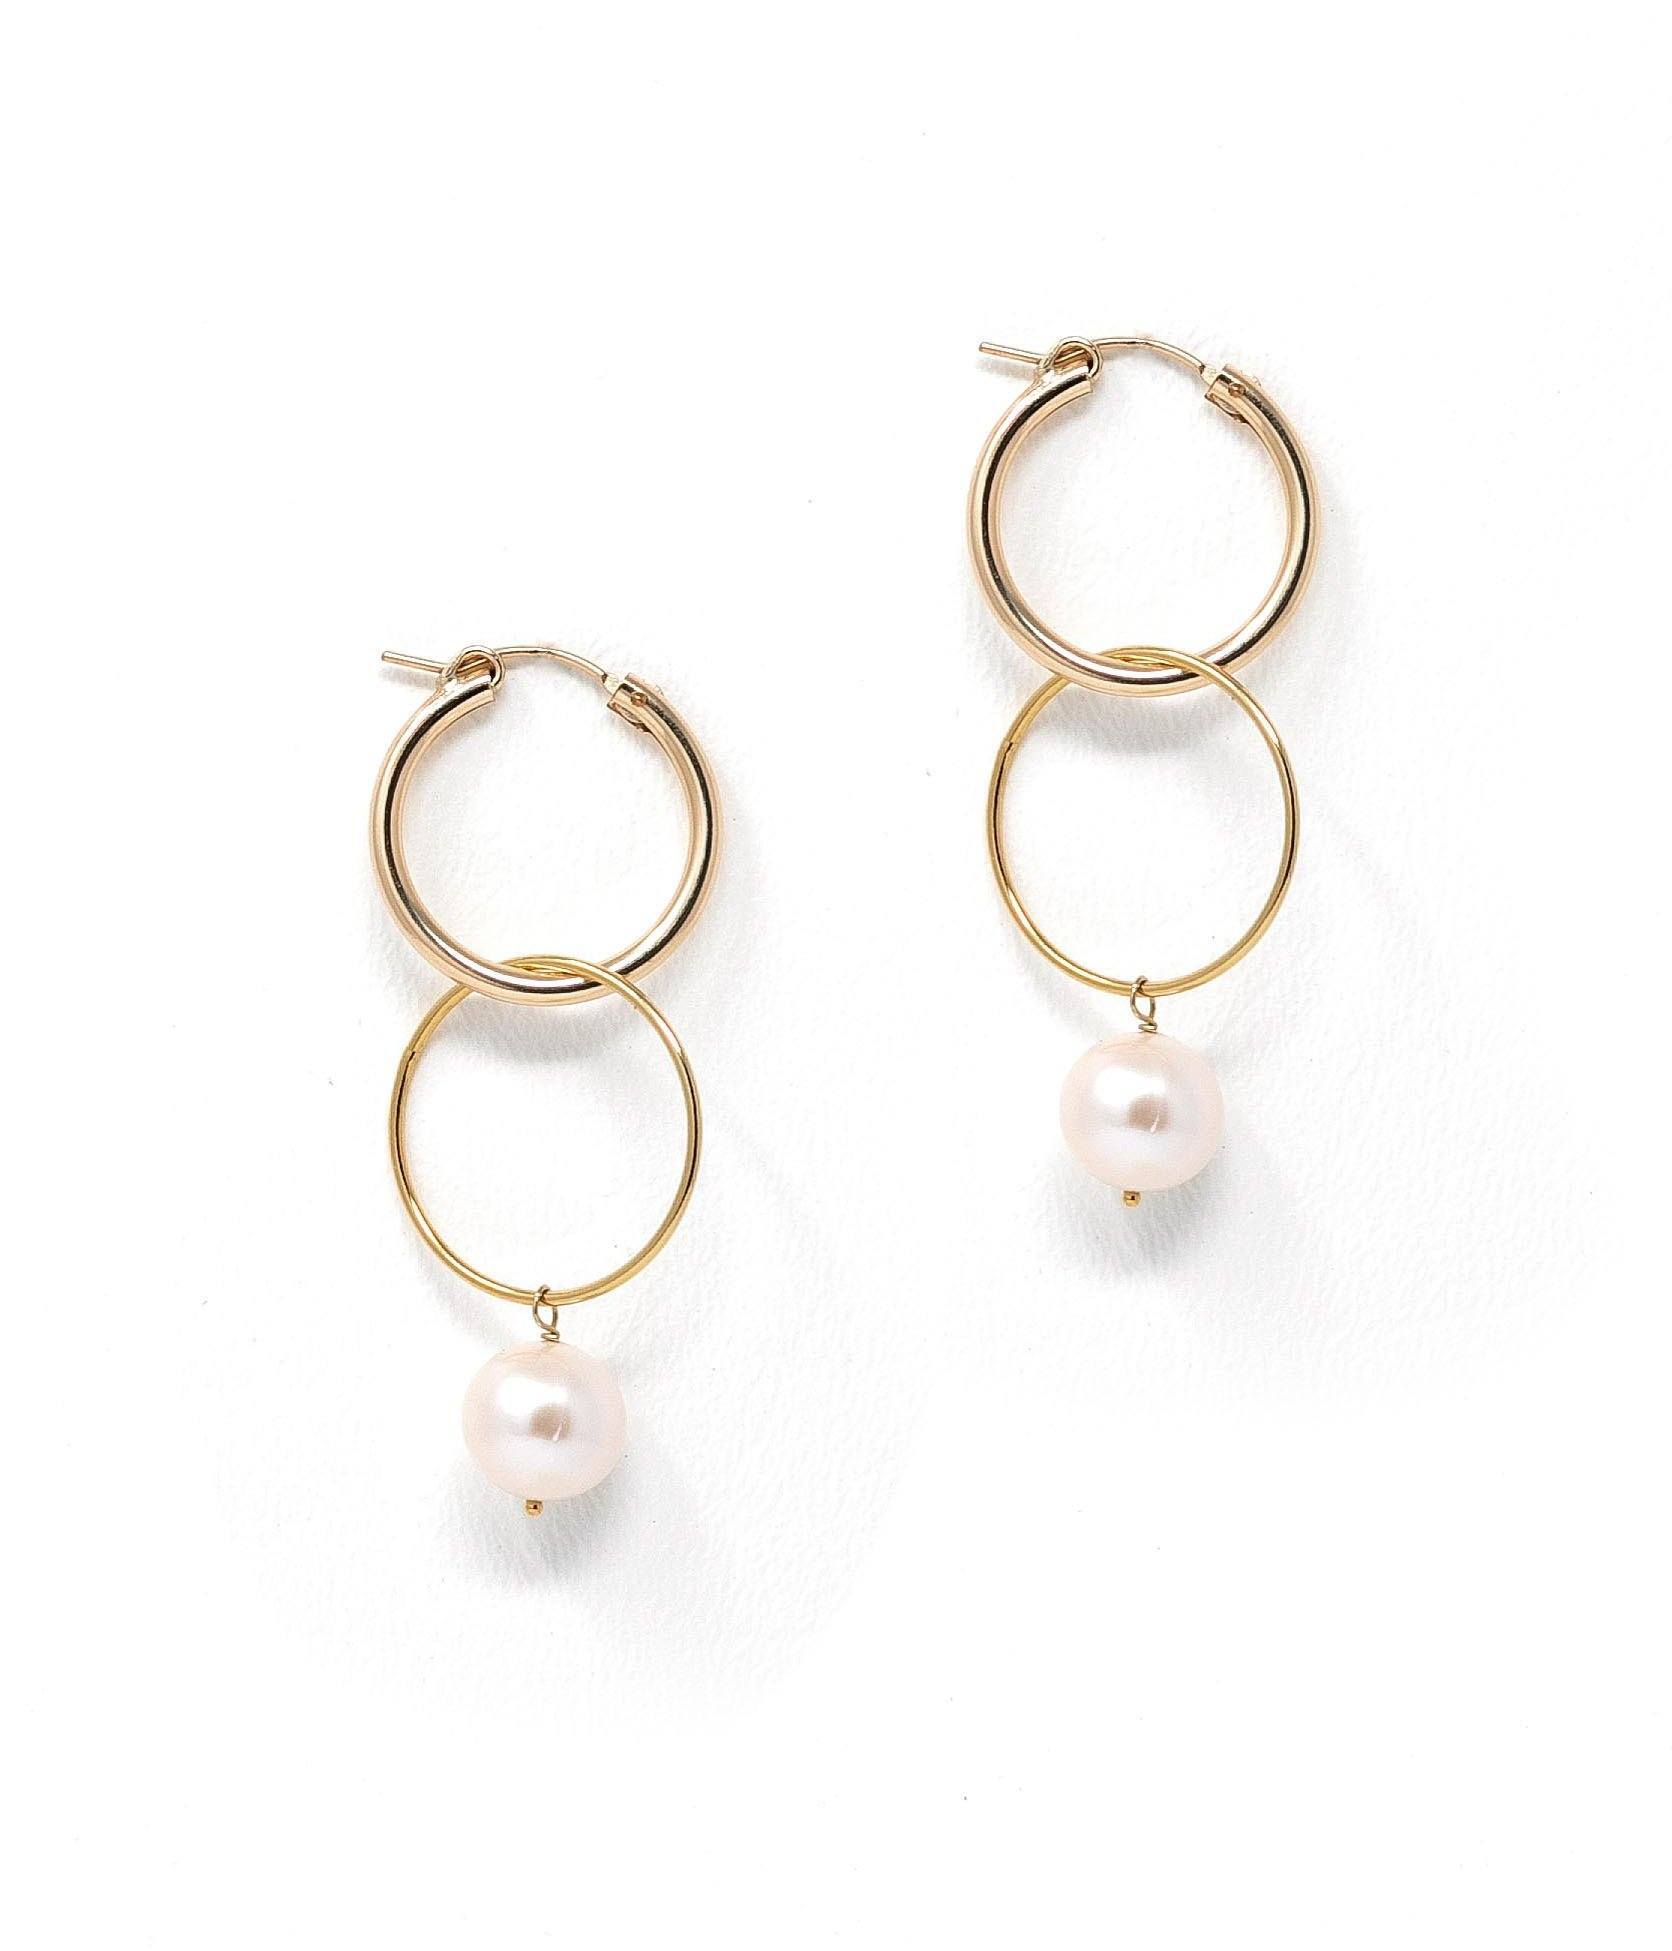 Nova Gold-Filled Hoop & Pearl Drop Earrings